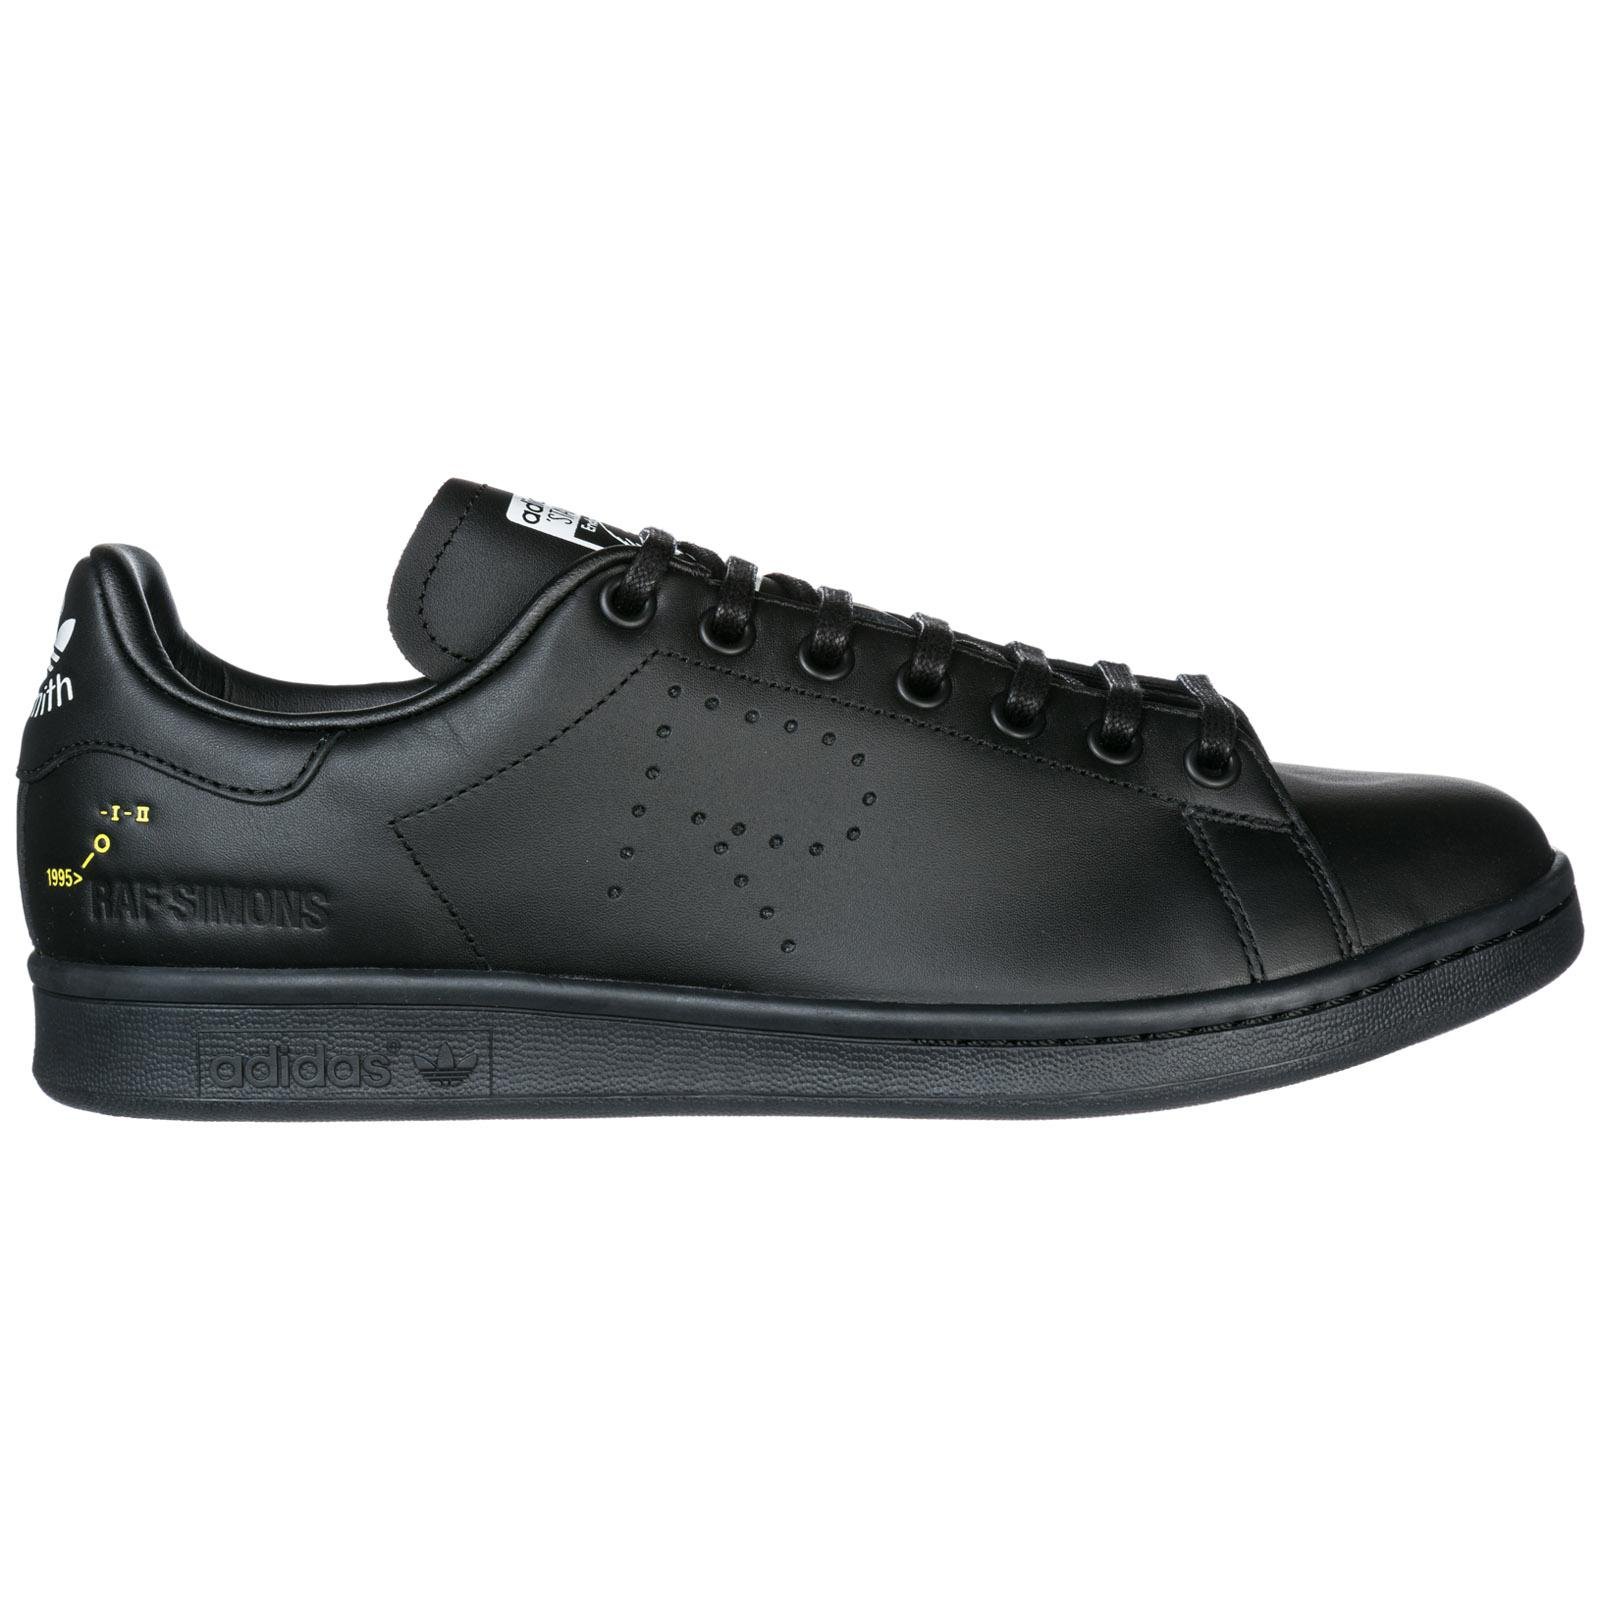 adidas By Raf Simons. Men s Black Shoes Leather Trainers Trainers Rs Stan  Smith 0e58dfa06e0